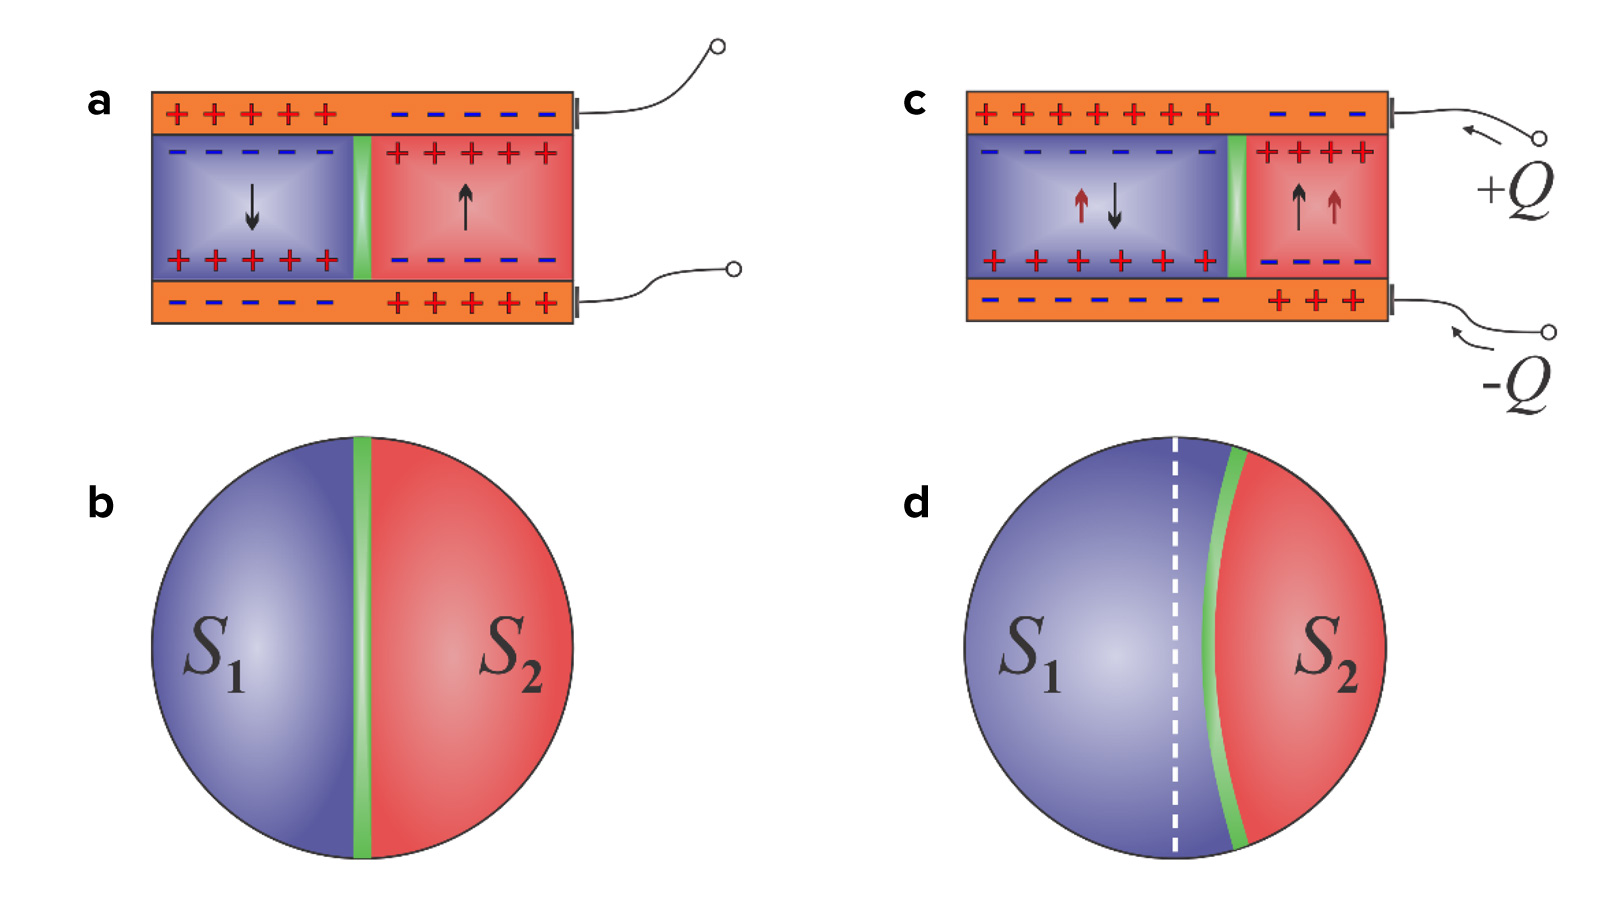 Movement of the domain wall (a-c and b-d) in a capacitor when a charge is added to one side (c).  The resulting redistribution of the domain wall causes a negative capacitive effect.